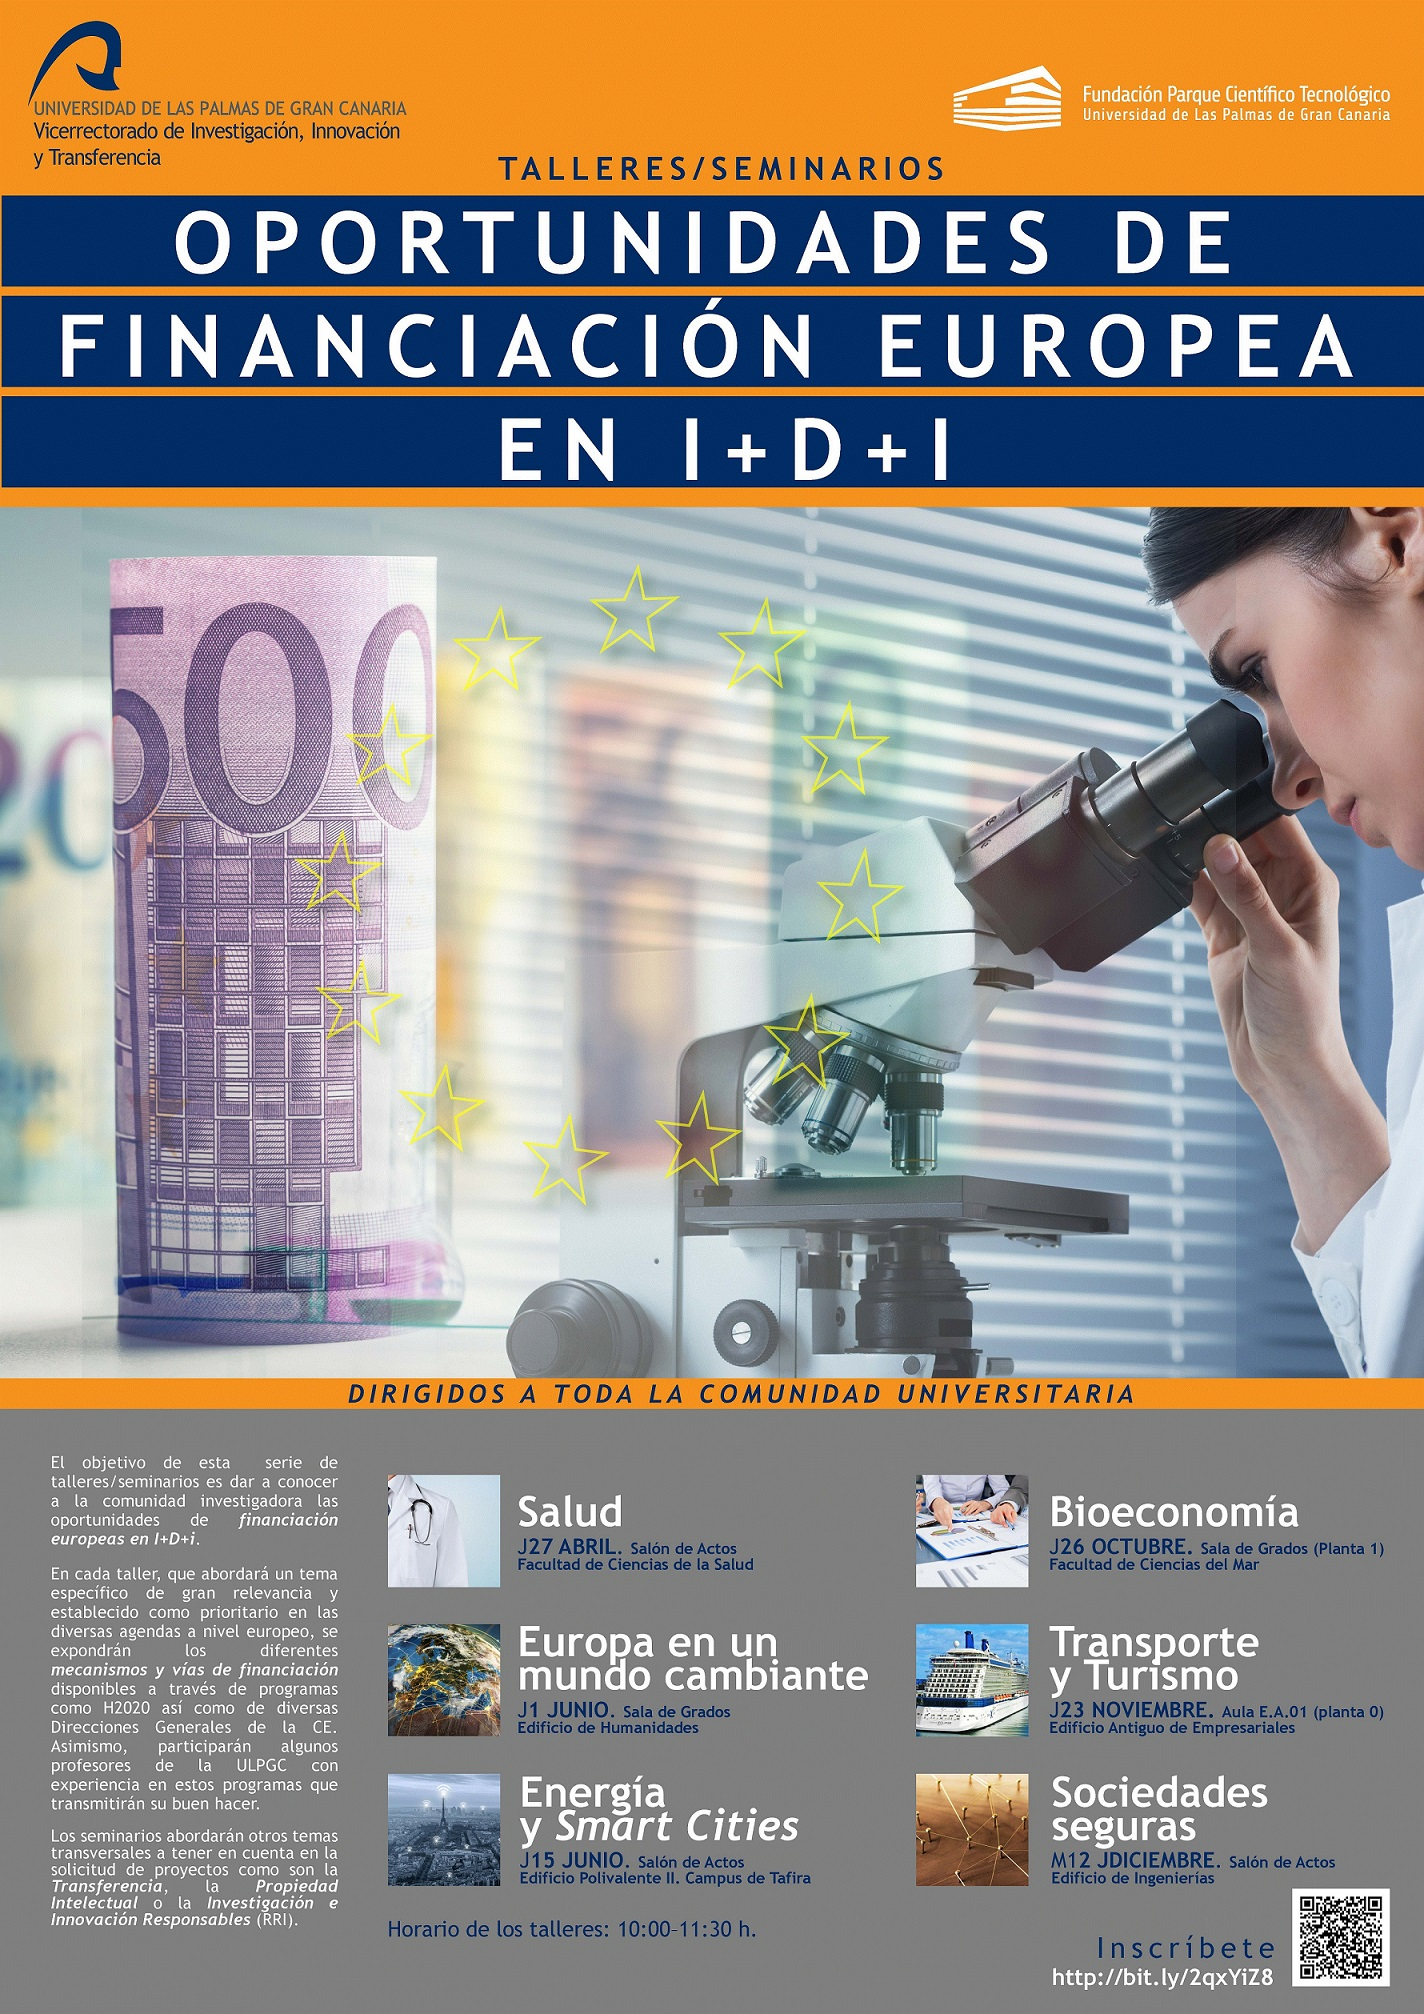 TalleresOportunidadesFinanciacionEuropea Final